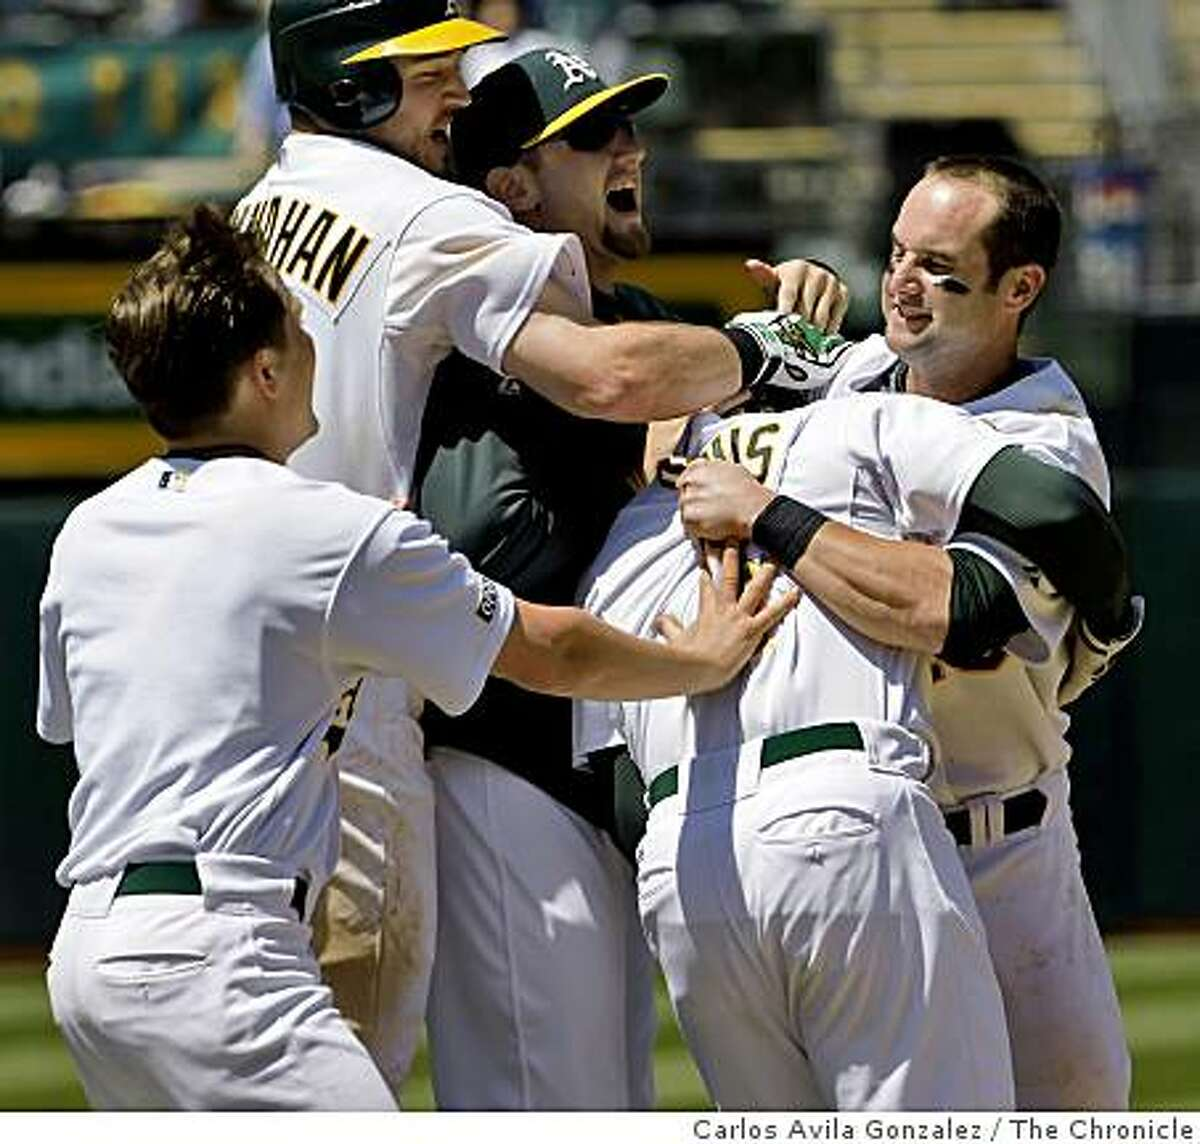 Teammates mob Rajai Davis after Davis hit a game-winning single to score Chris Denorfia in the bottom of the ninth inning of play. The Oakland Athletics played the Minnesota Twins at the Oakland-Alameda County Coliseum in Oakland, Calif., on Thursday, June 11, 2009, in their final game of the series. The Athletics won the game 4-3.